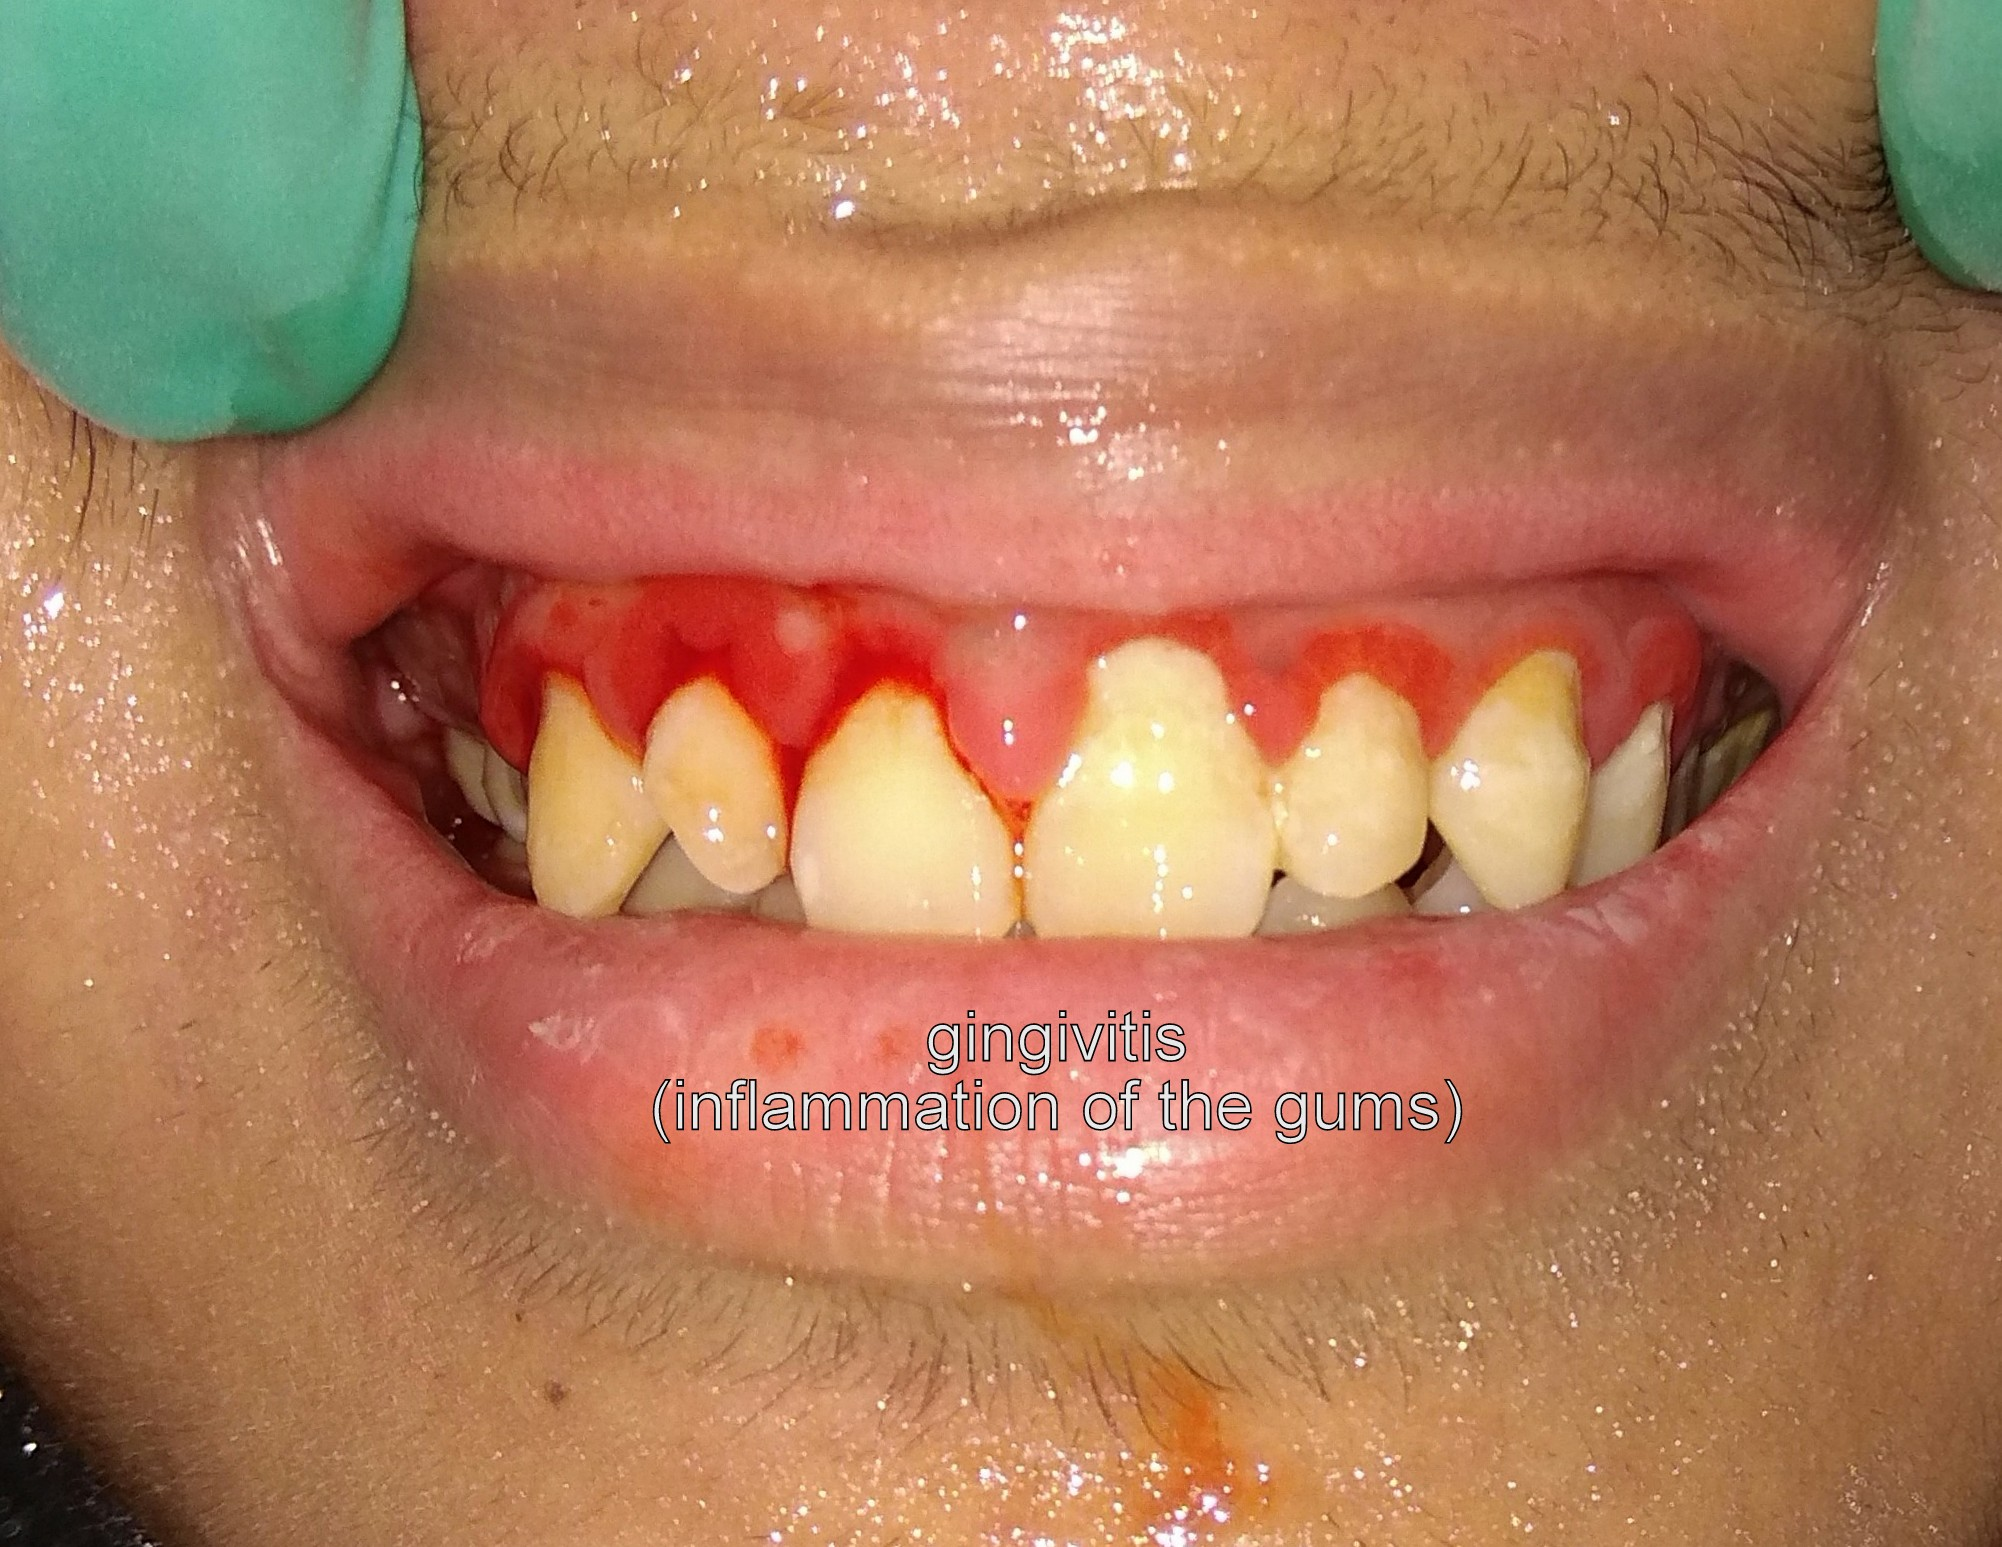 gingivitis can be prevented